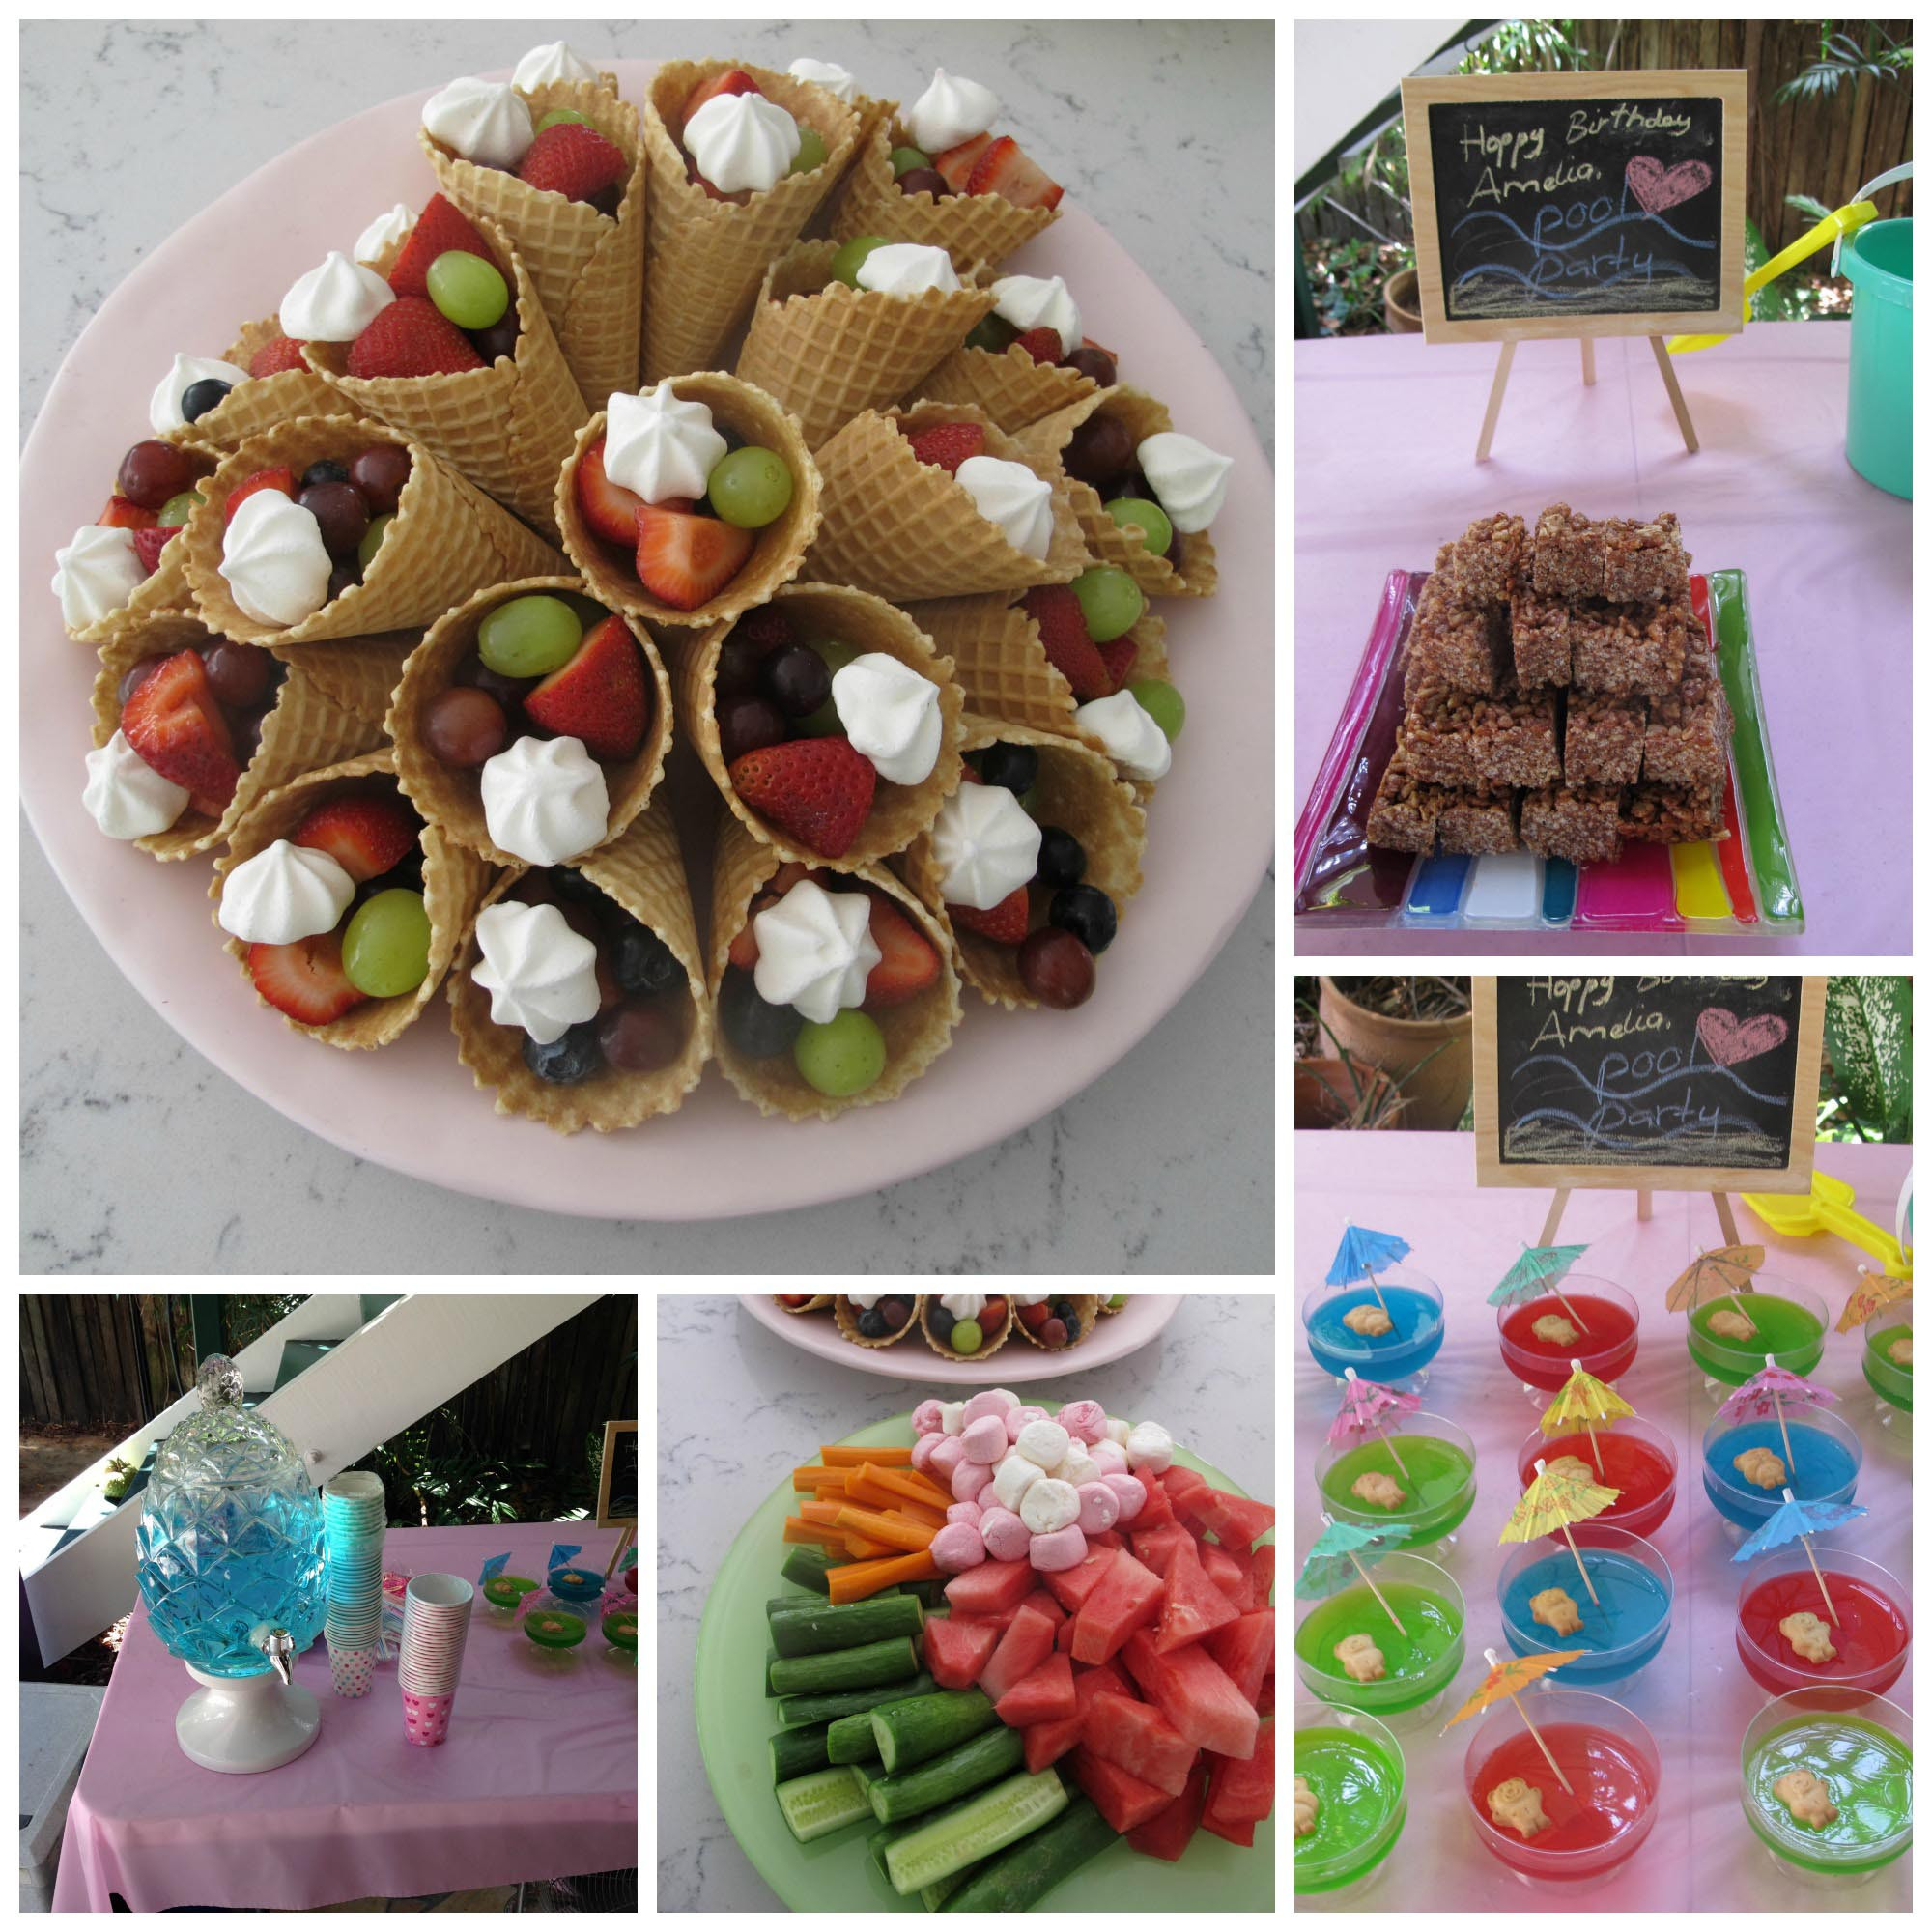 Kids Pool Party Food Ideas  The Perfect Kids Pool Party